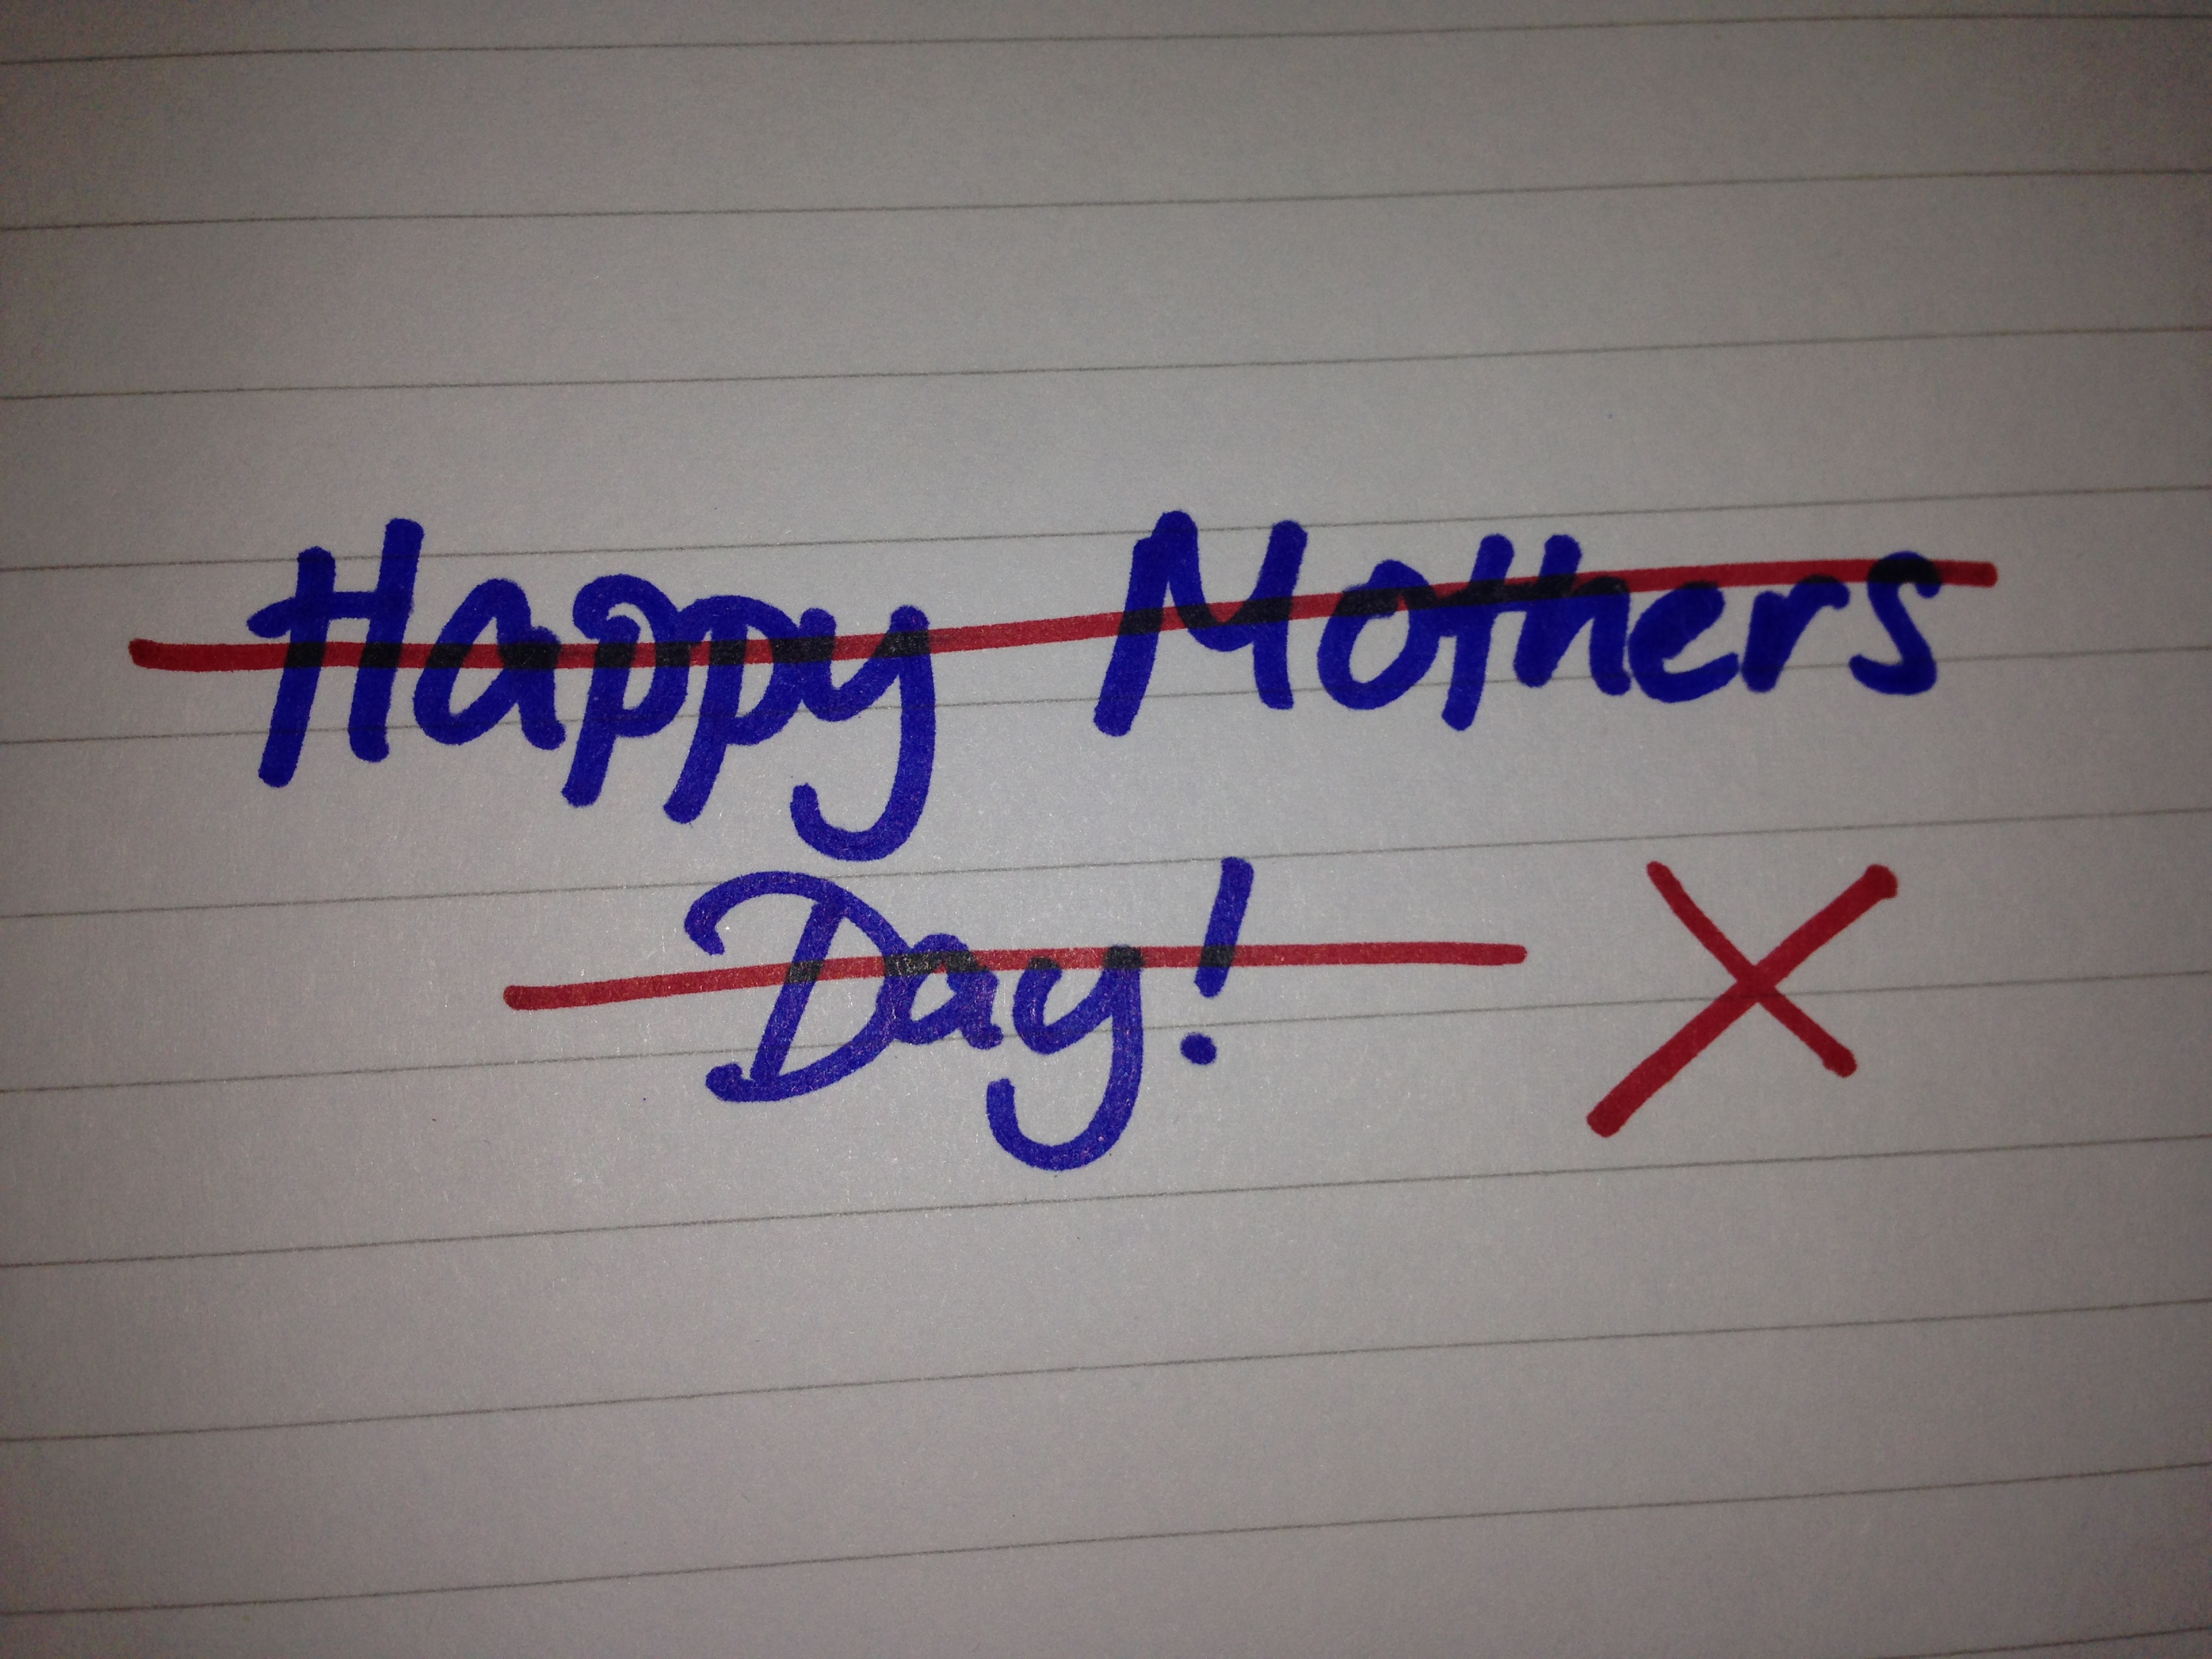 Mother's Day 2014: How poor grammar ruins special days for us pedants